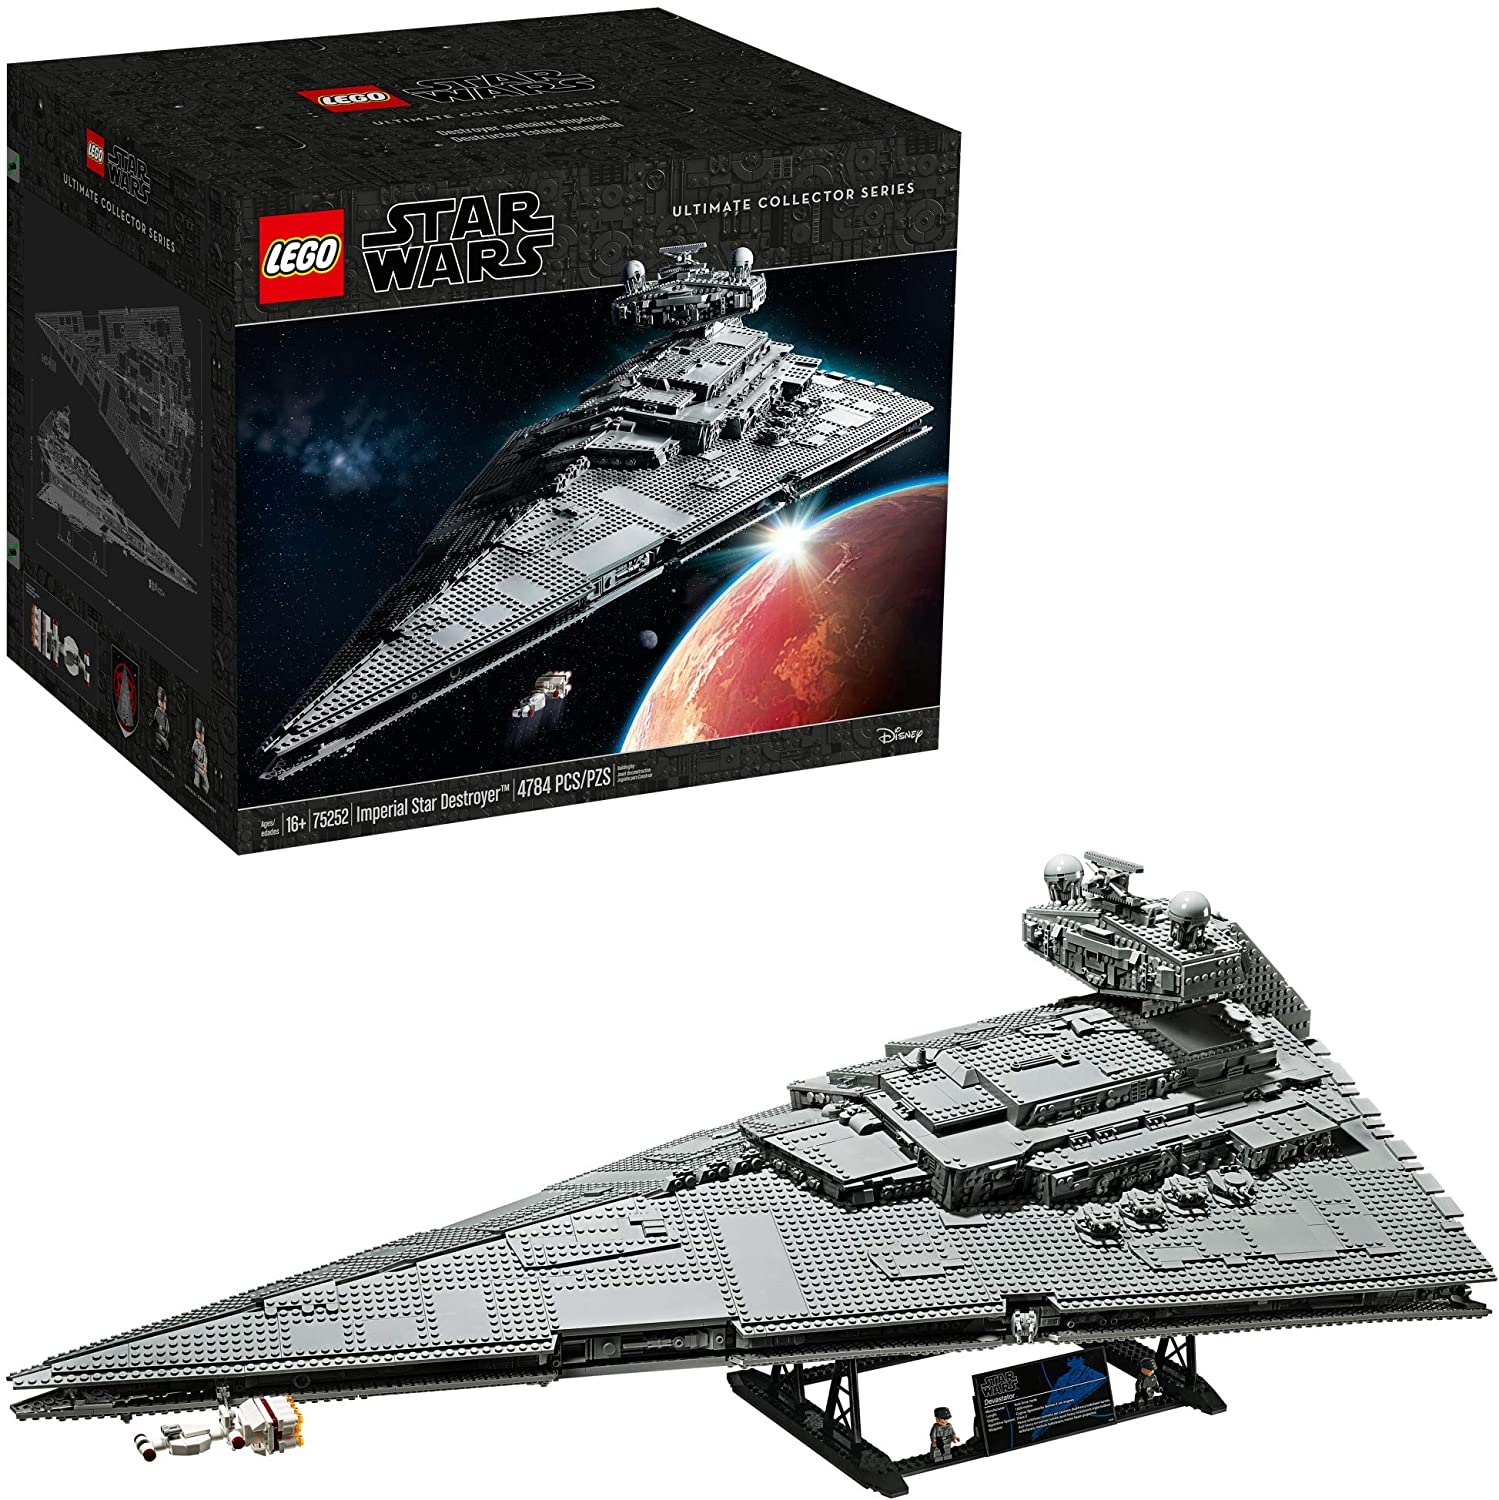 star wars lego set for adults, imperial star destroyer